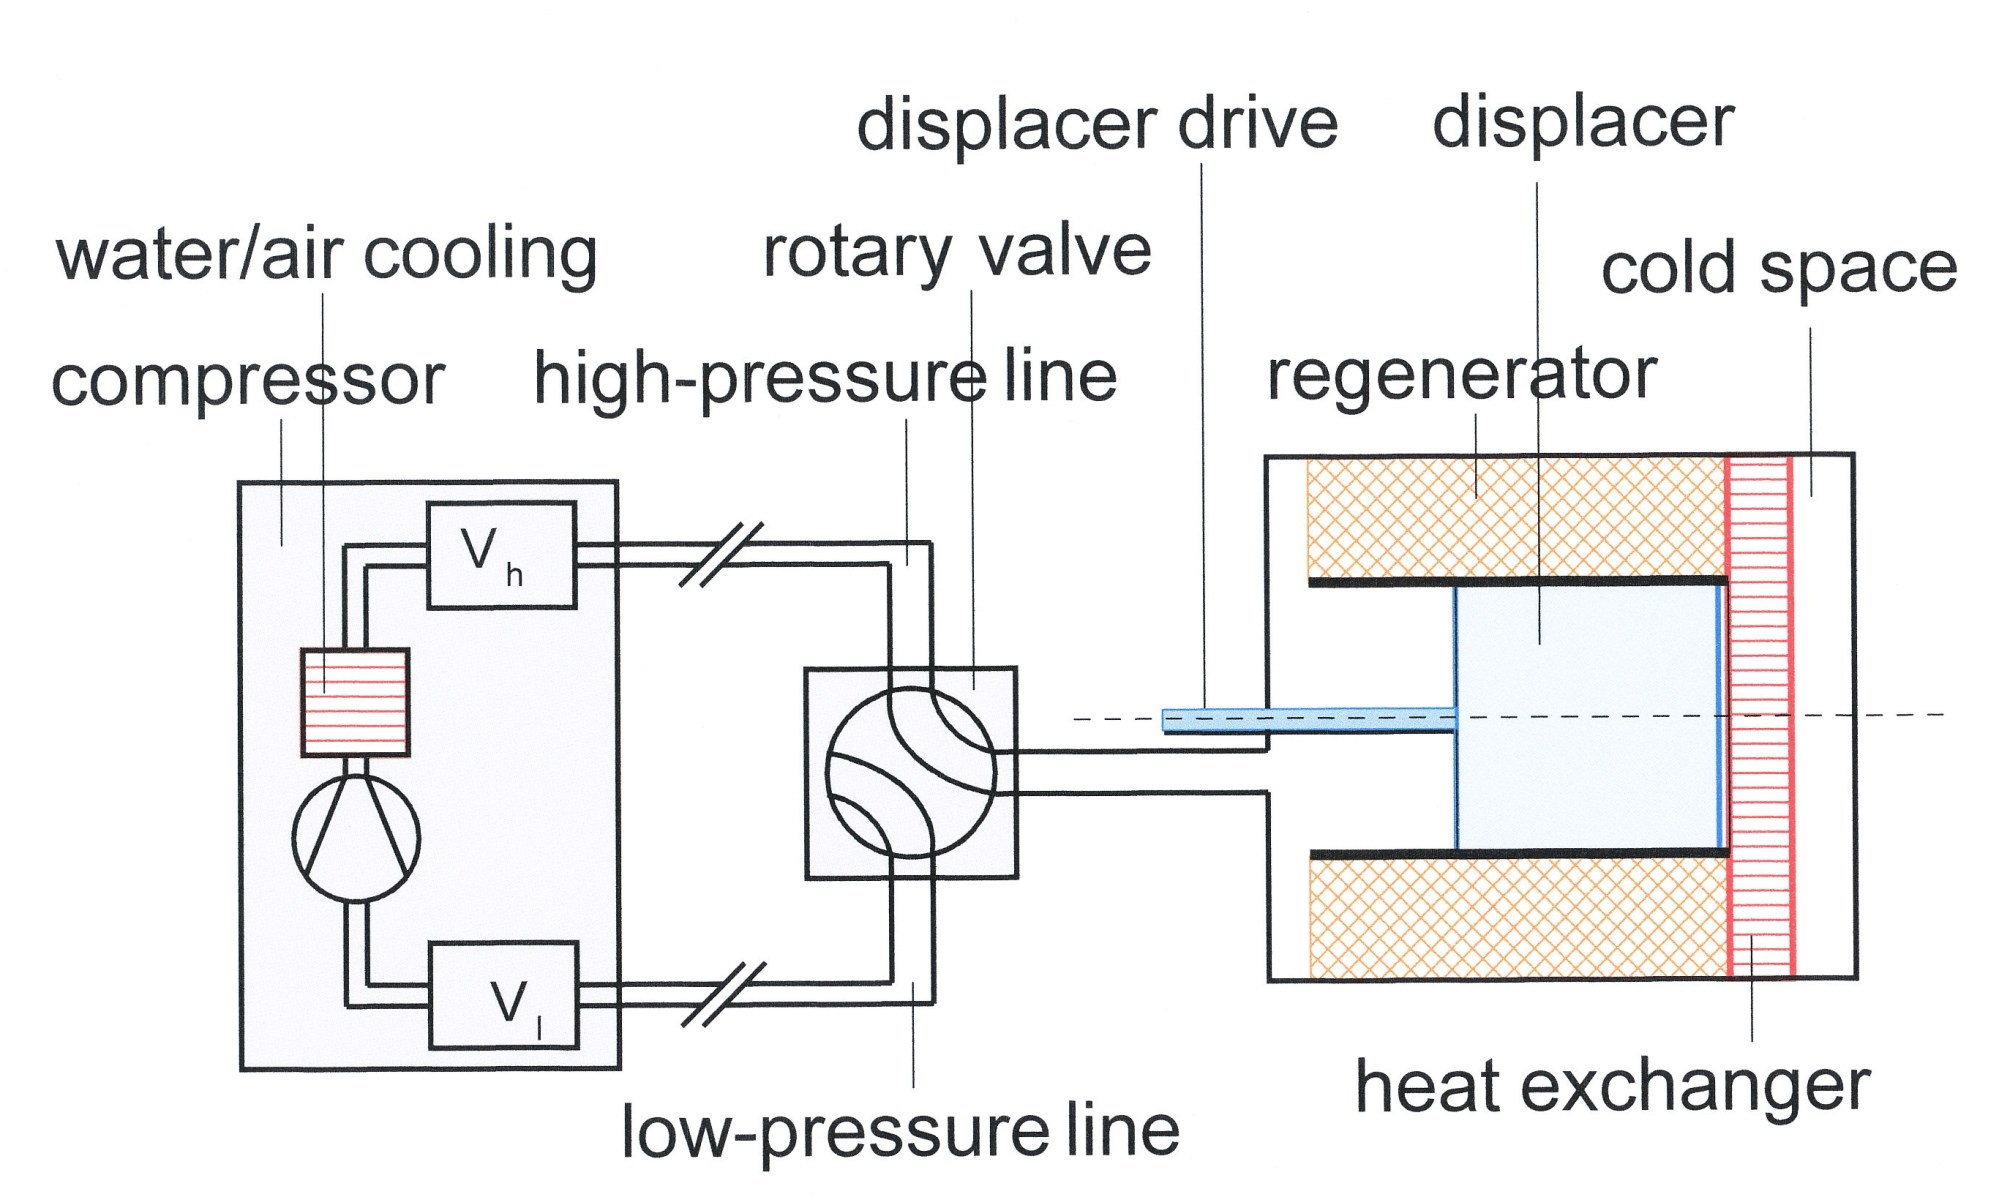 hight resolution of file gm cooler schematic jpg wikipediafile gm cooler schematic jpg